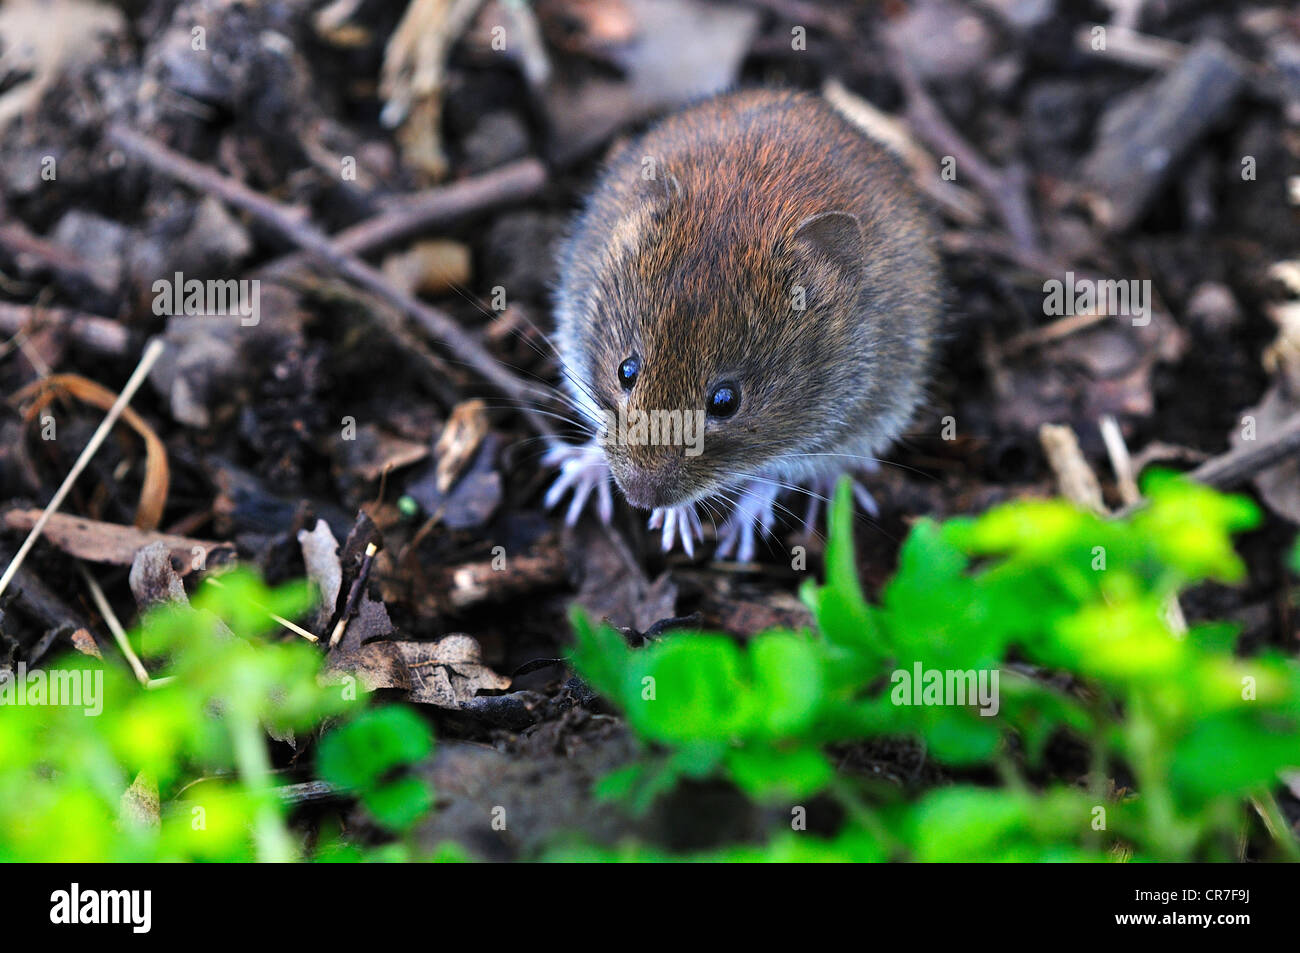 A harvest mouse, a tiny rodent UK - Stock Image